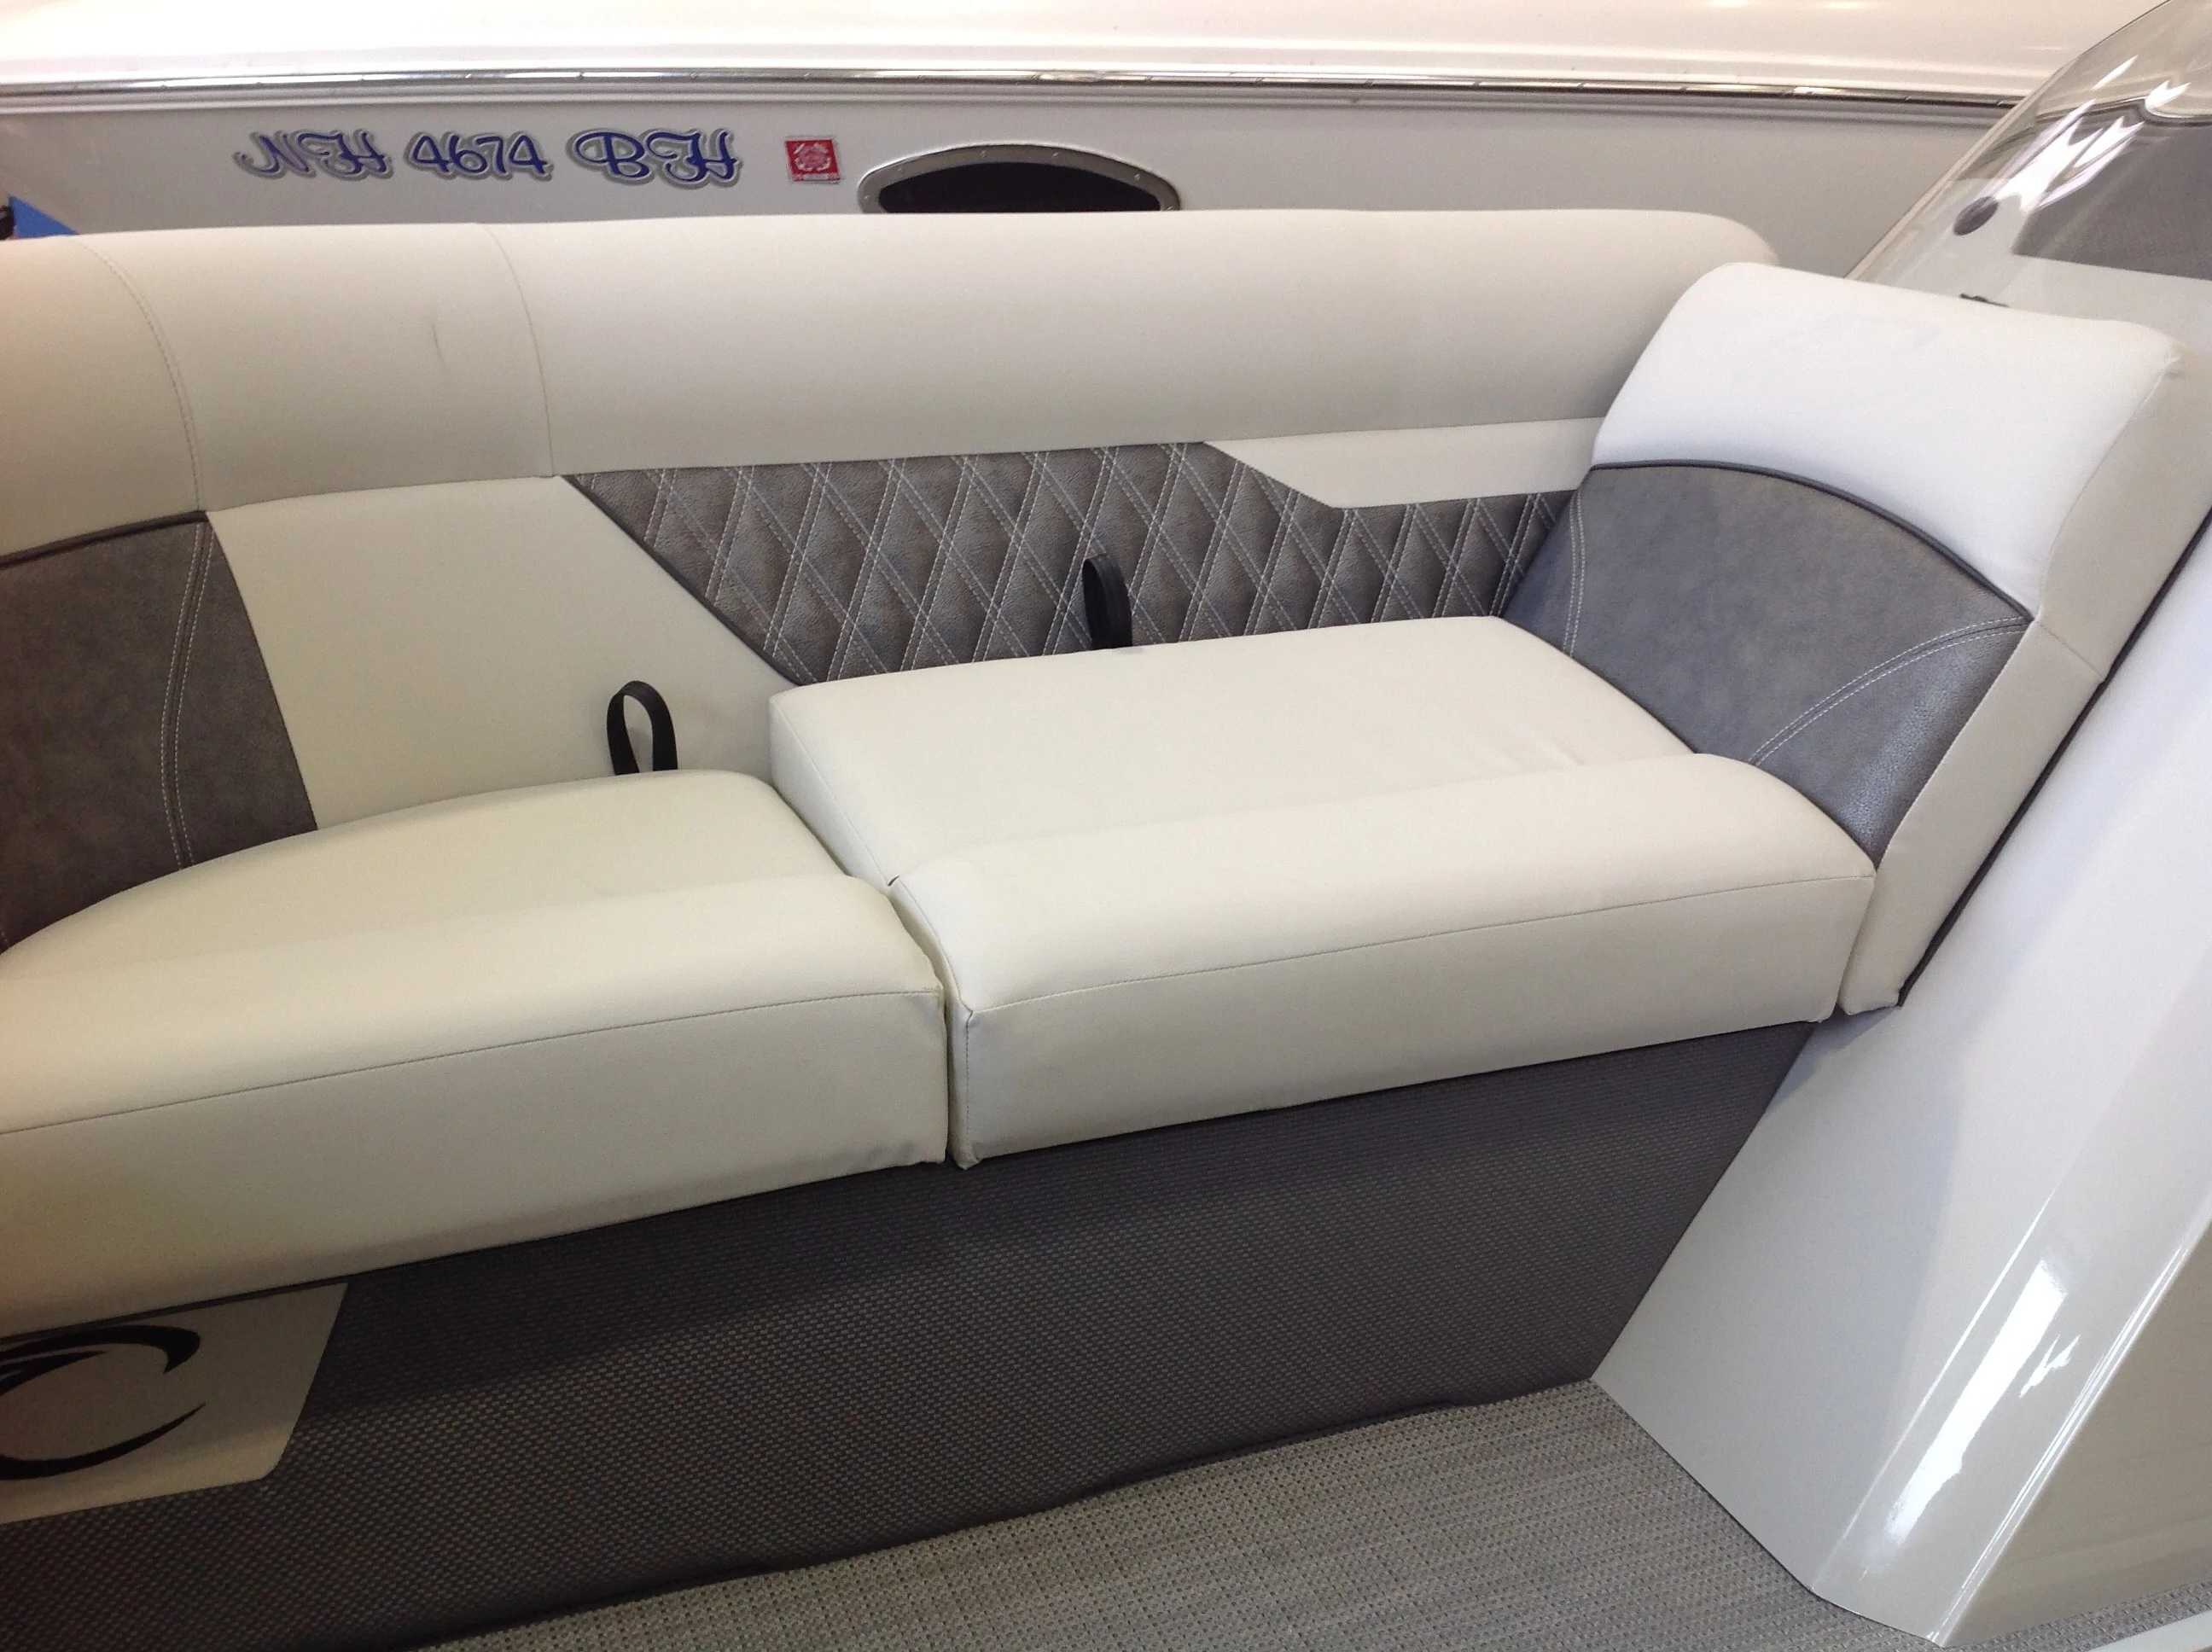 2021 Crest boat for sale, model of the boat is CL DLX & Image # 4 of 14